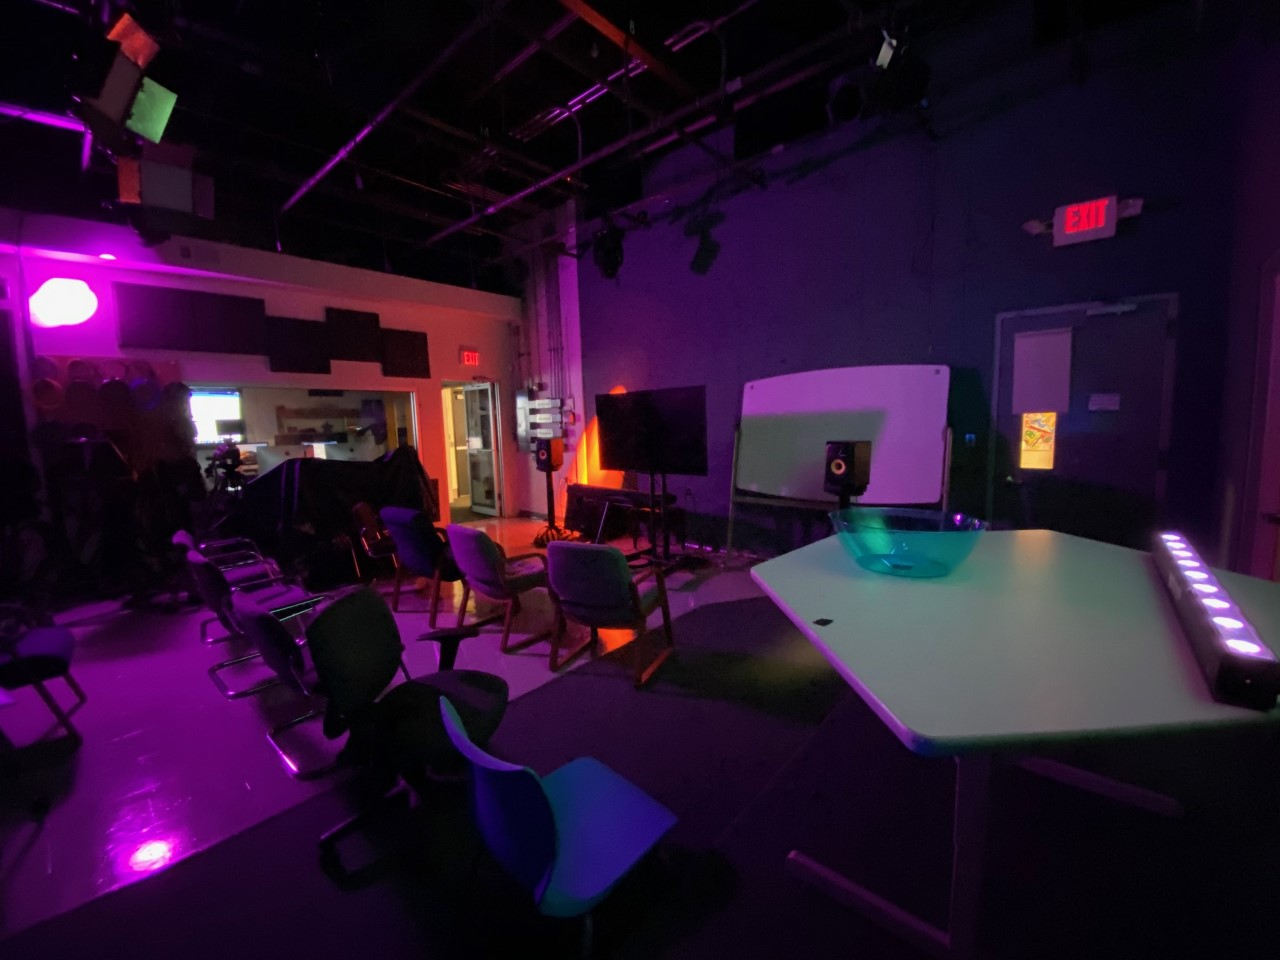 Colorful lighting set up in a classroom